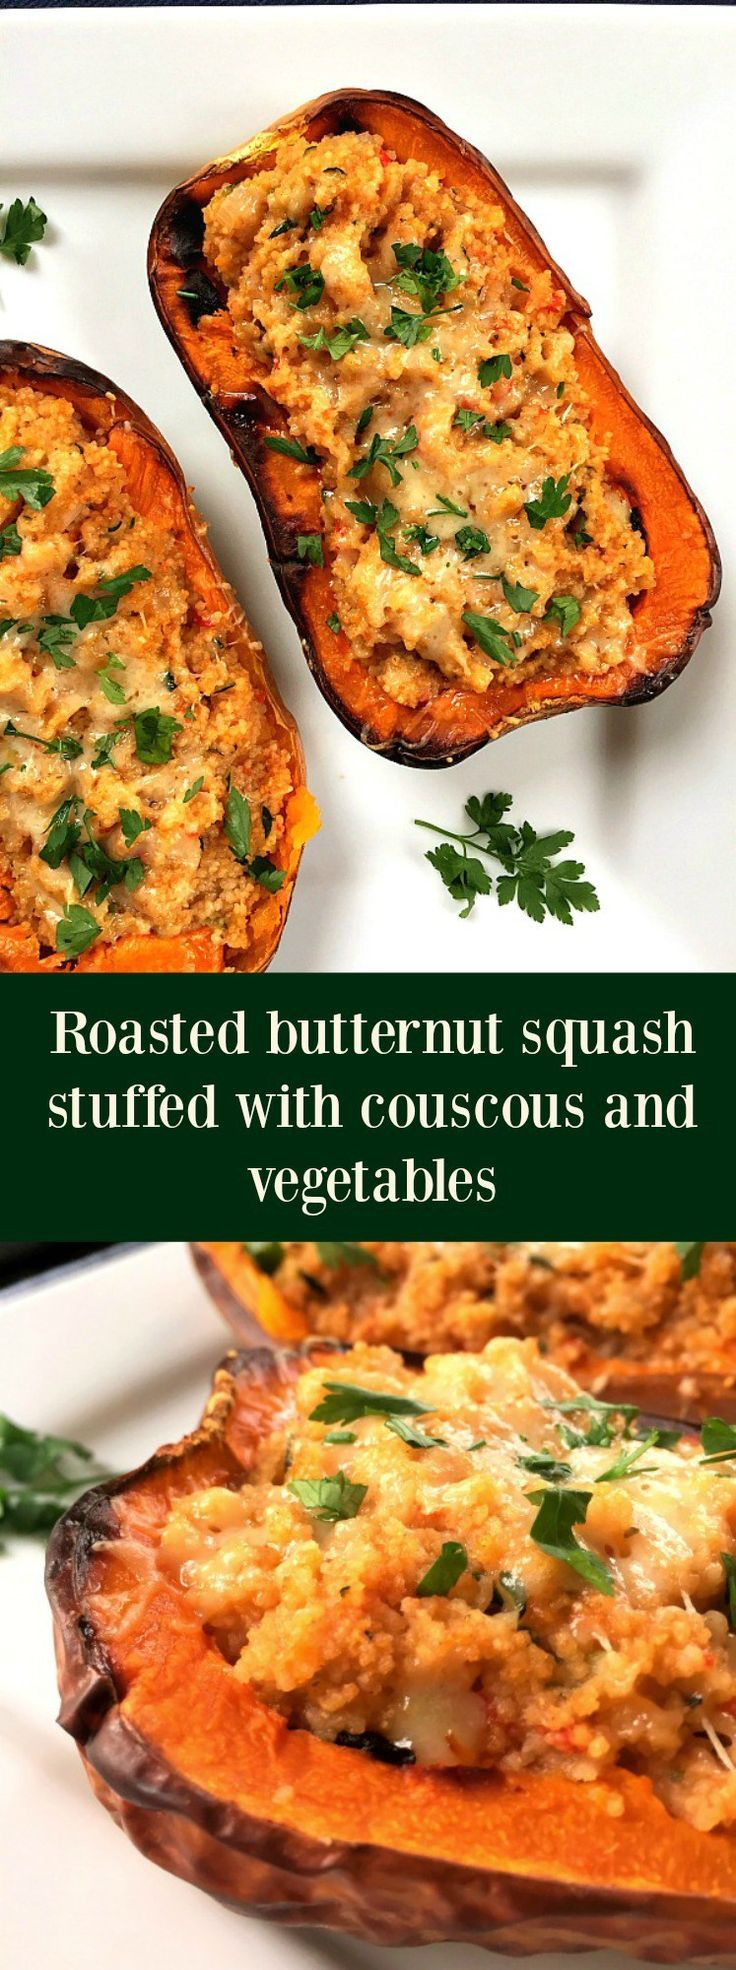 Roasted butternut squash stuffed with couscous and vegetables, a delicious vegetarian dish to impress your guests this Thanksgiving.